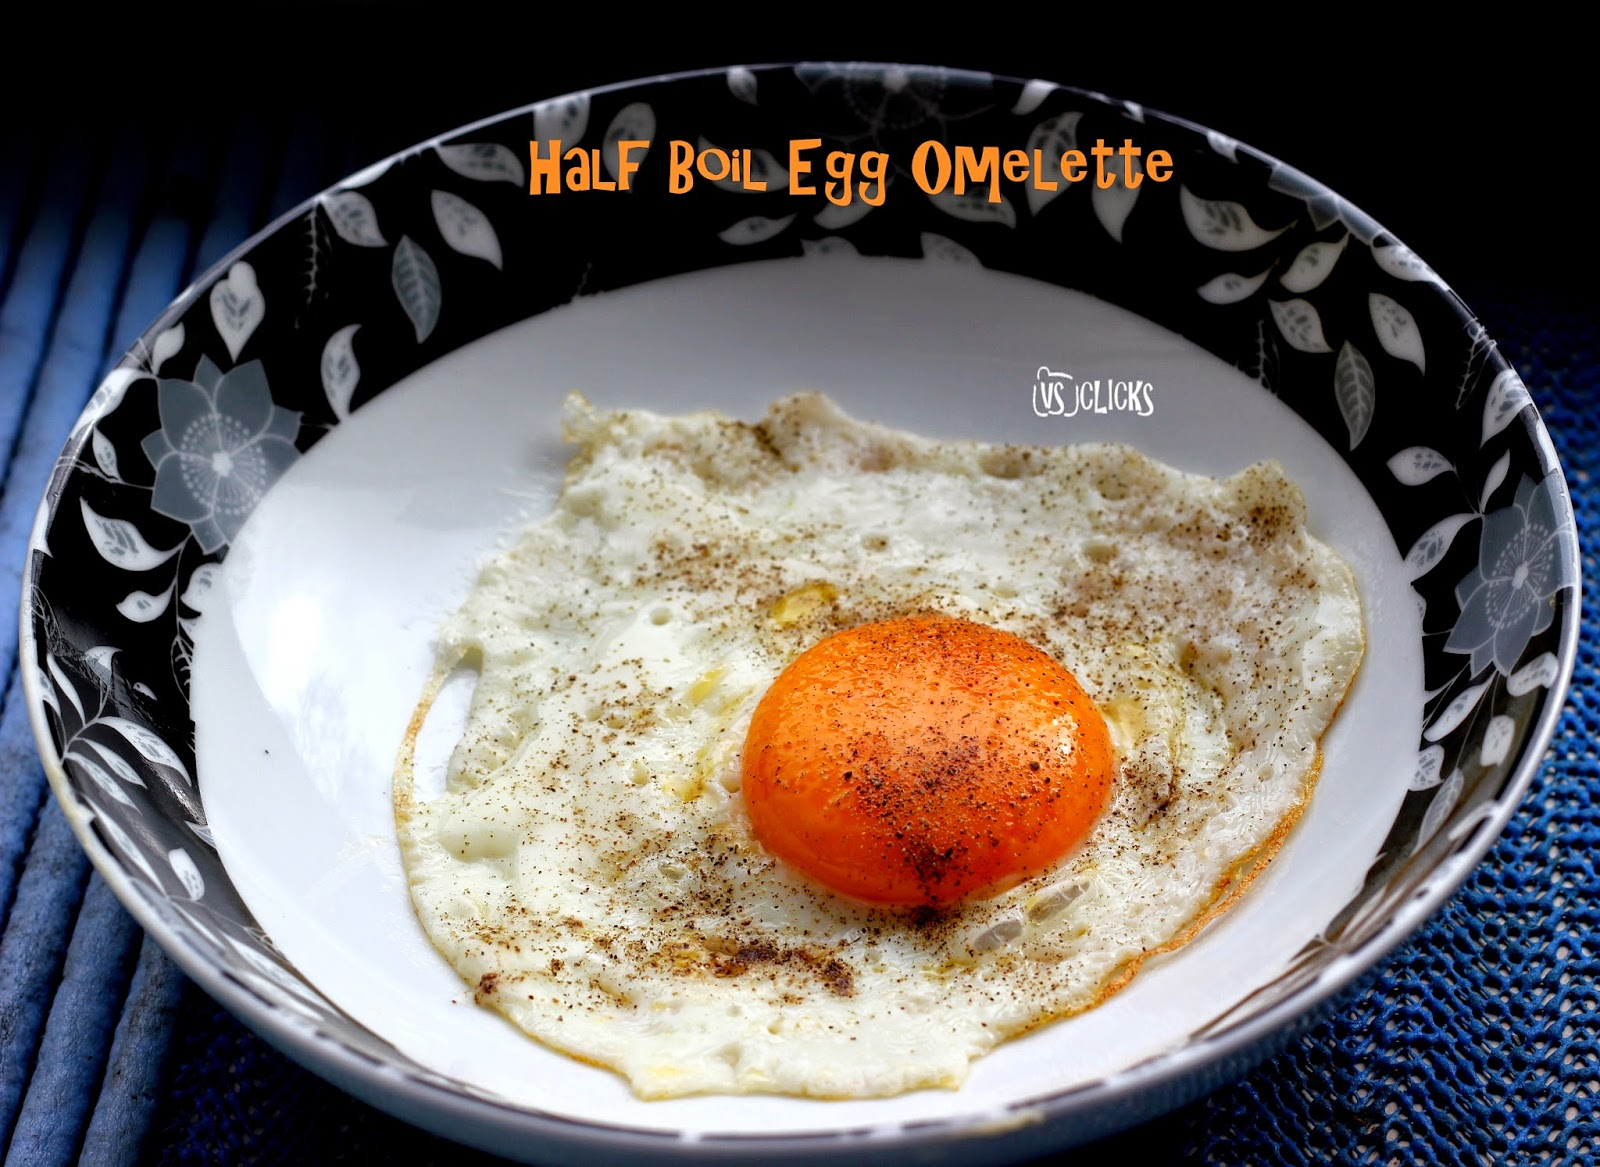 Half Boil Egg Omelette by Vinayaka Vidhya cooked on April 20, 2014